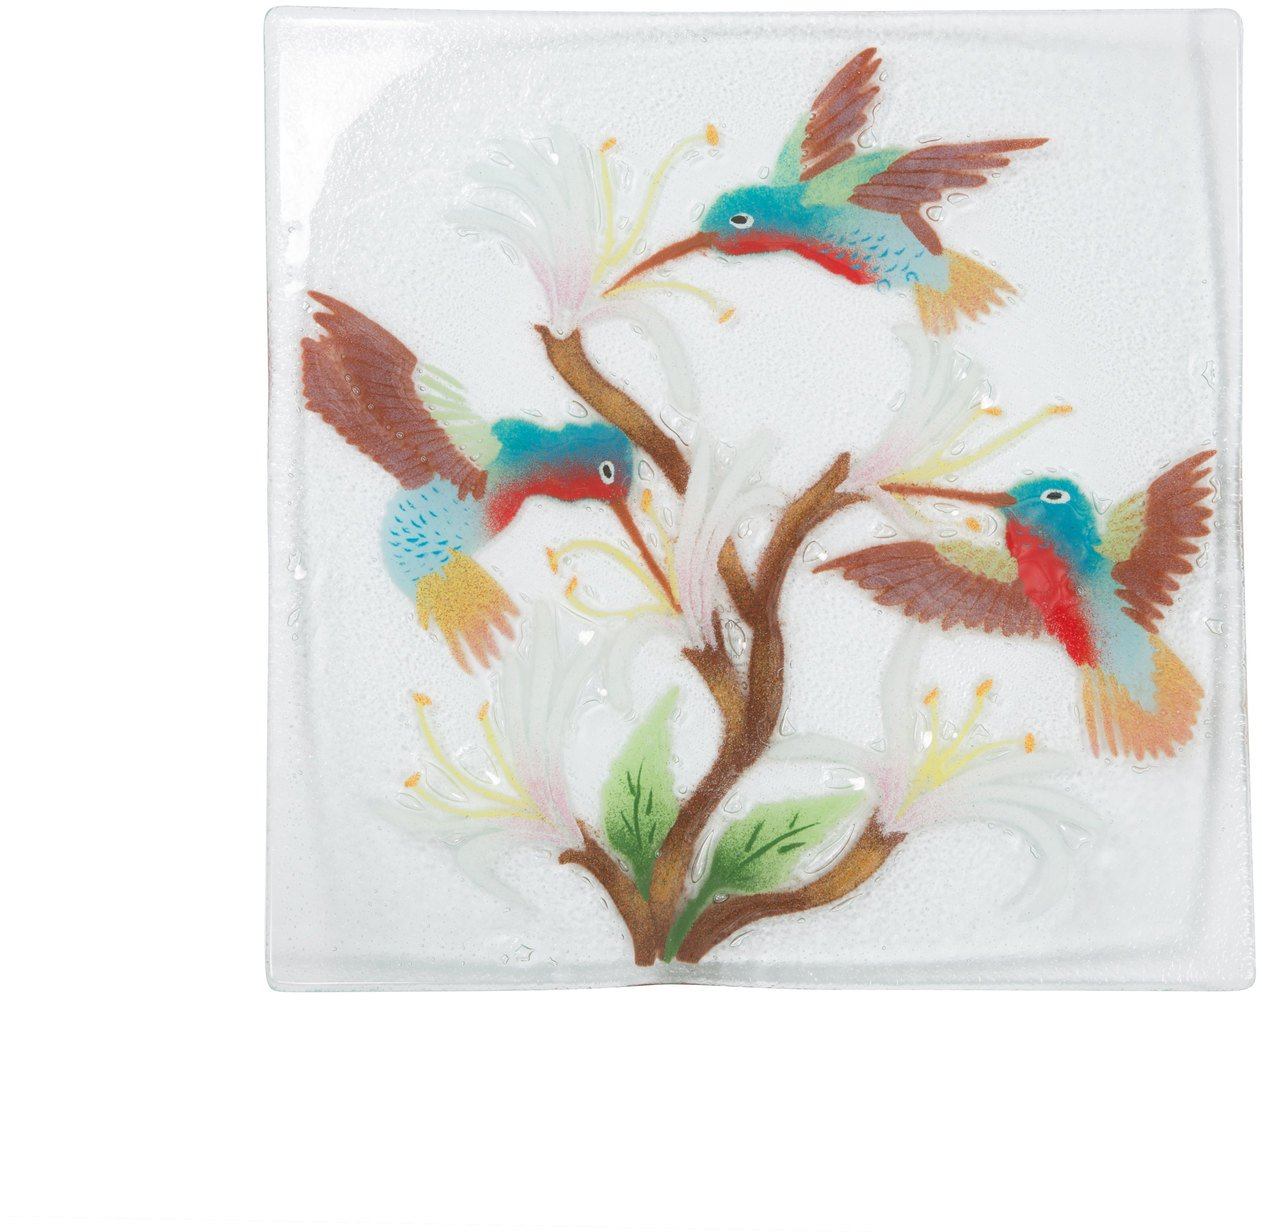 Fusion Art Glass 10-Inch Square Plate with Hummingbird Design